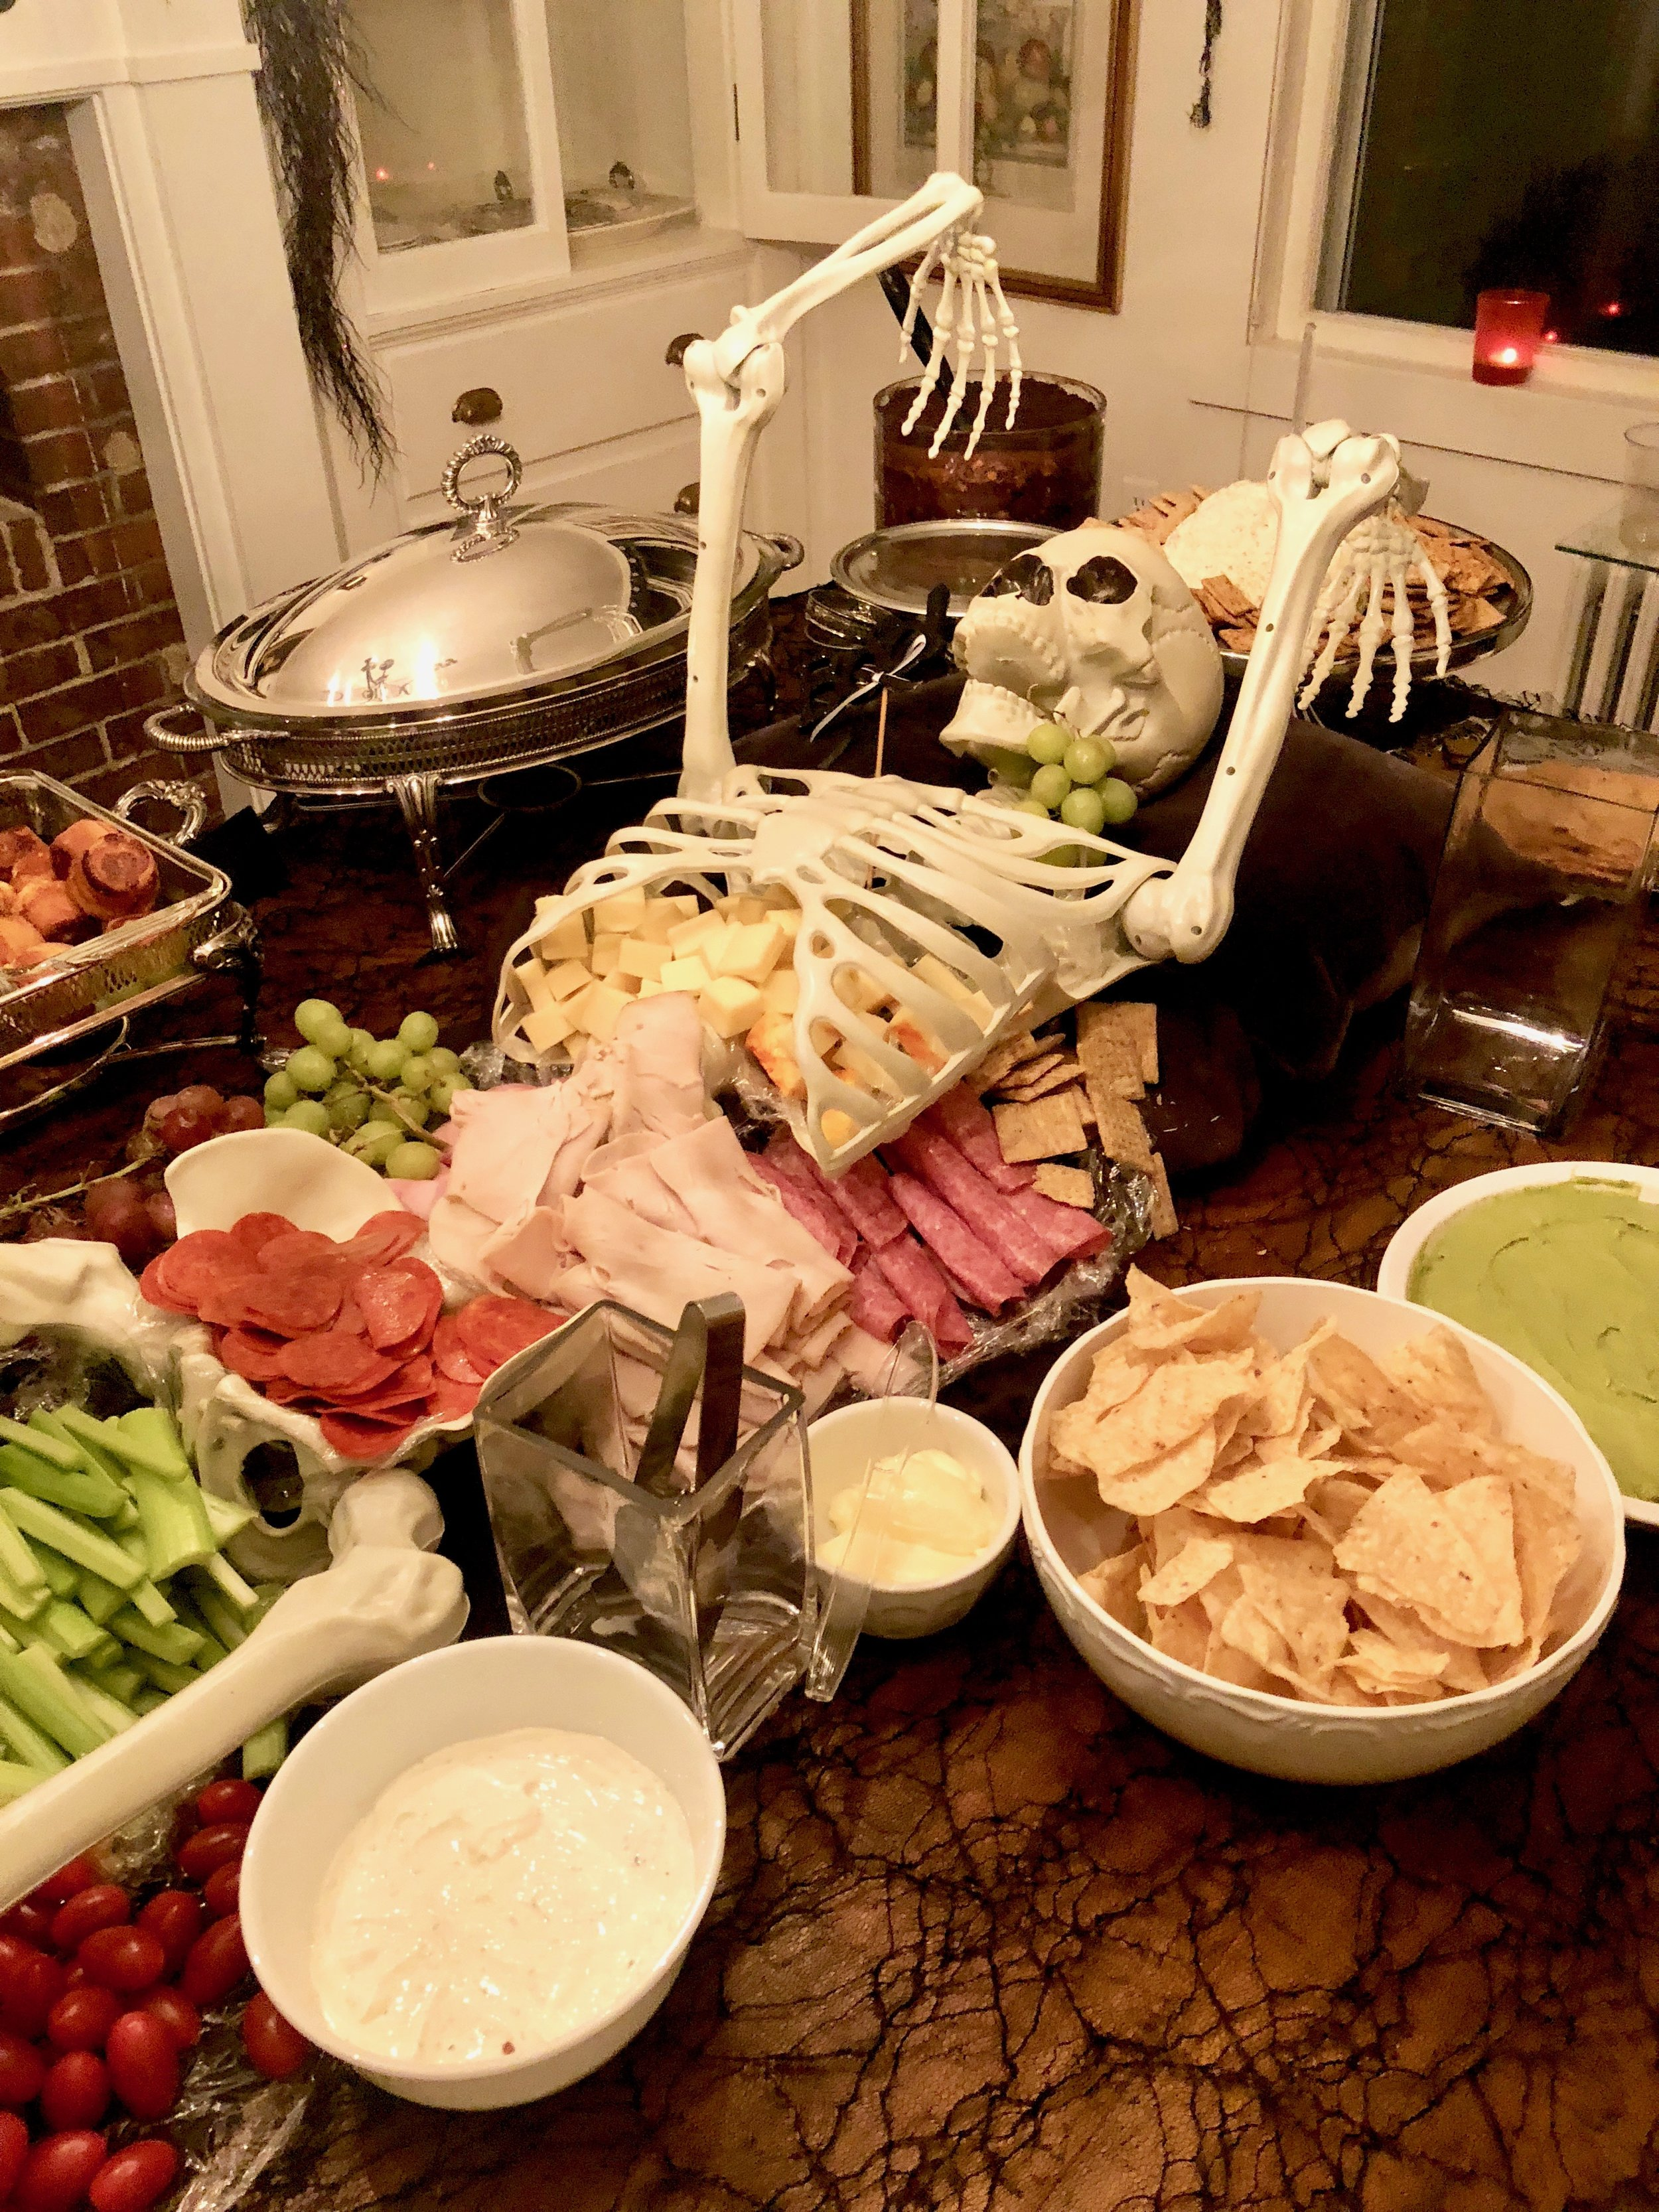 skeleton on dining room table for appetizers